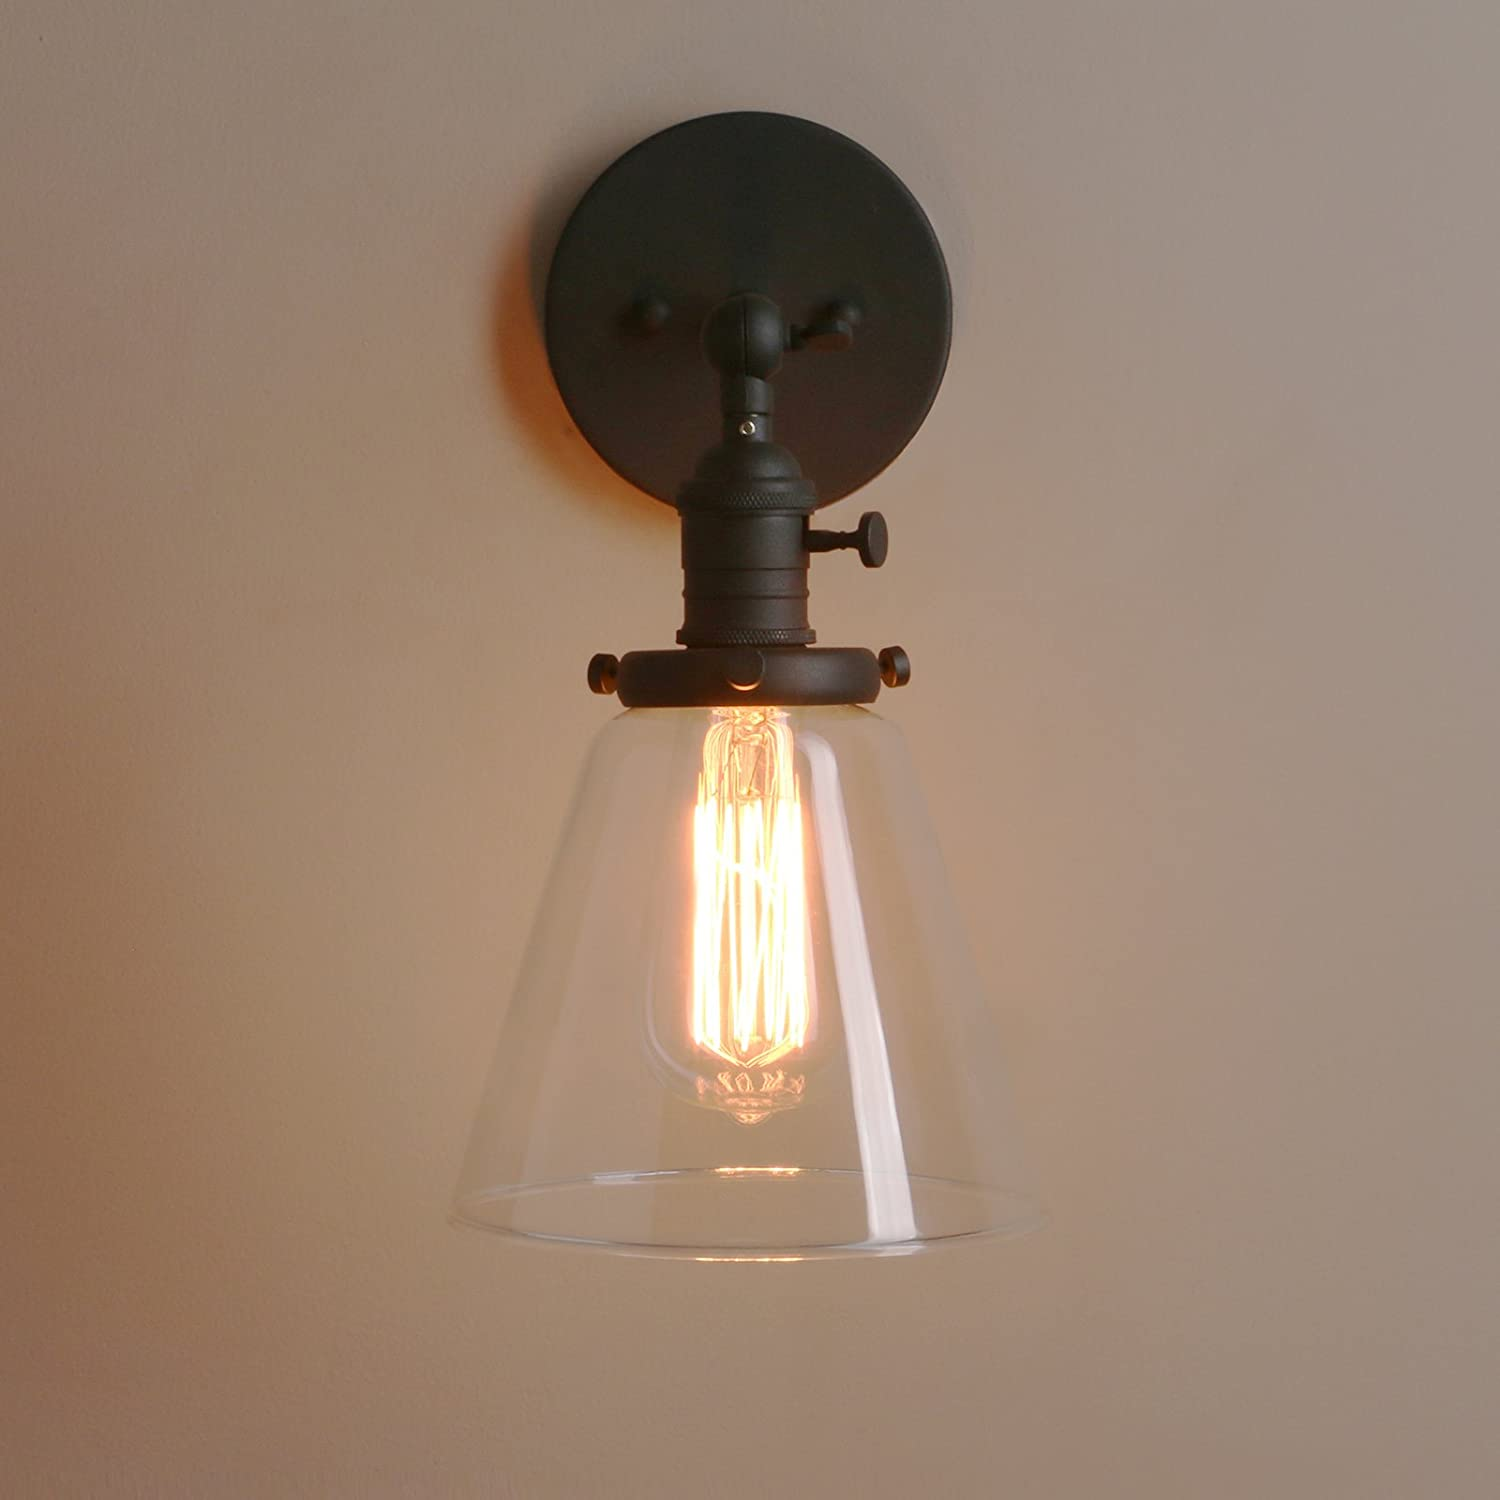 Permo Industrial Wall Sconce Lighting with On/Off Switch Funnel ...